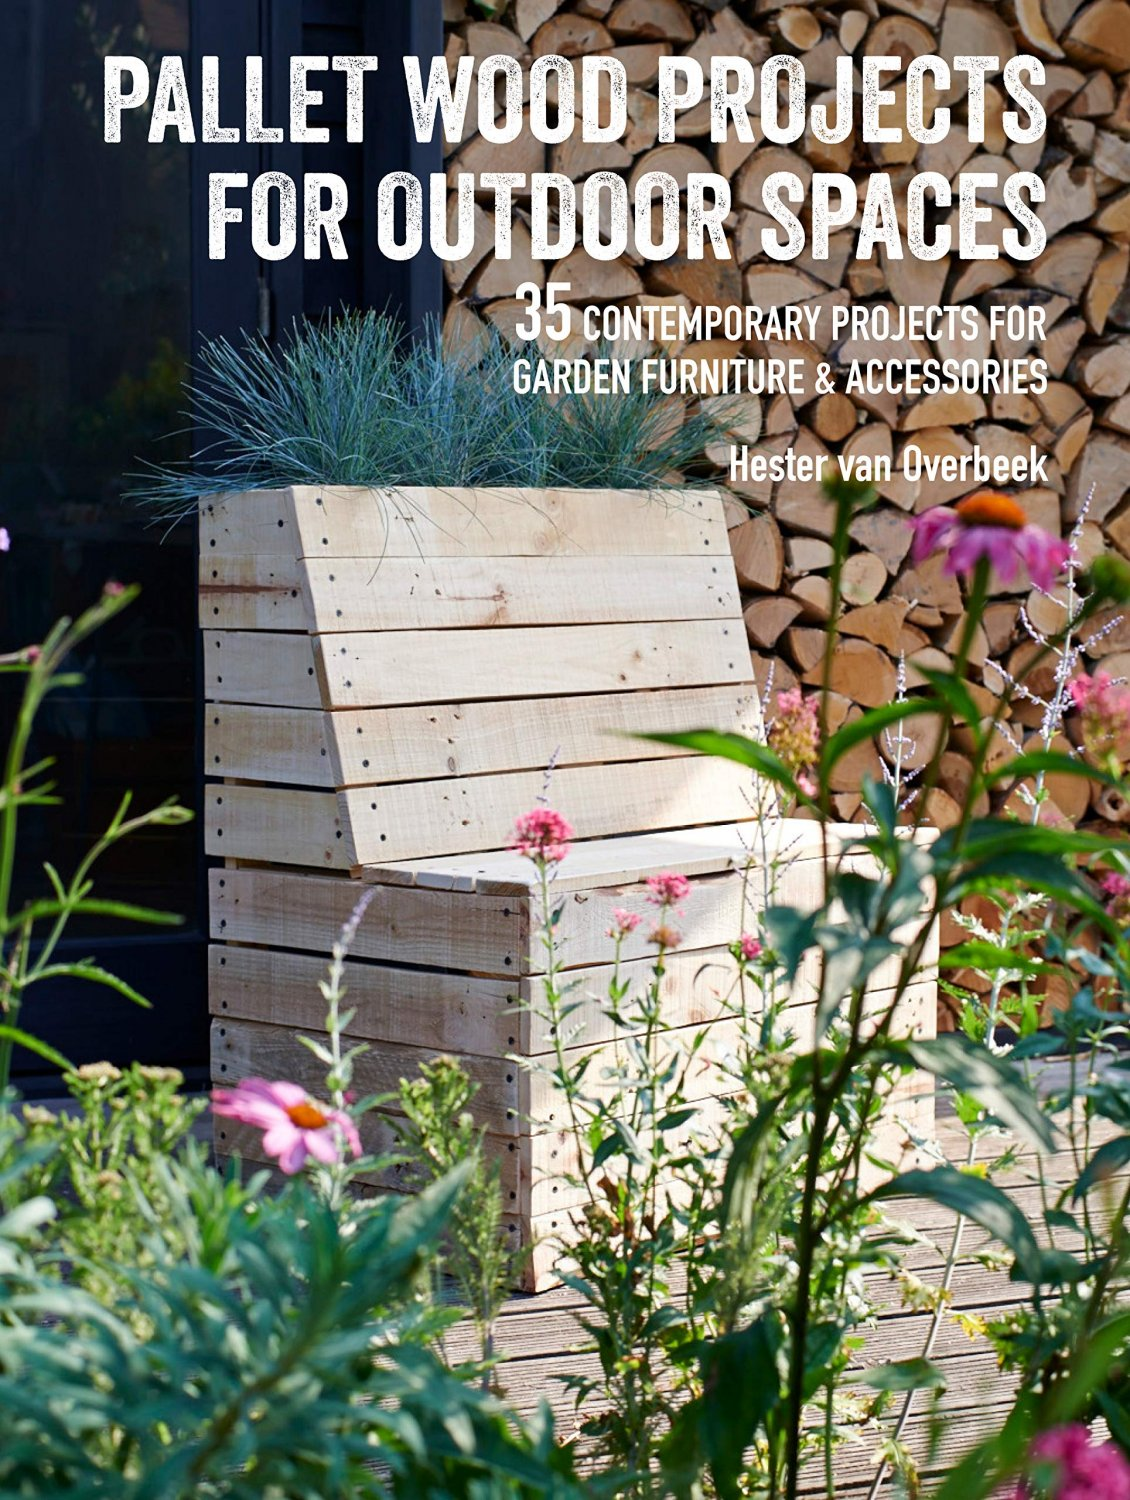 Pallet Wood Projects for Outdoor Spaces: 35 contemporary projects for garden furniture & accessories